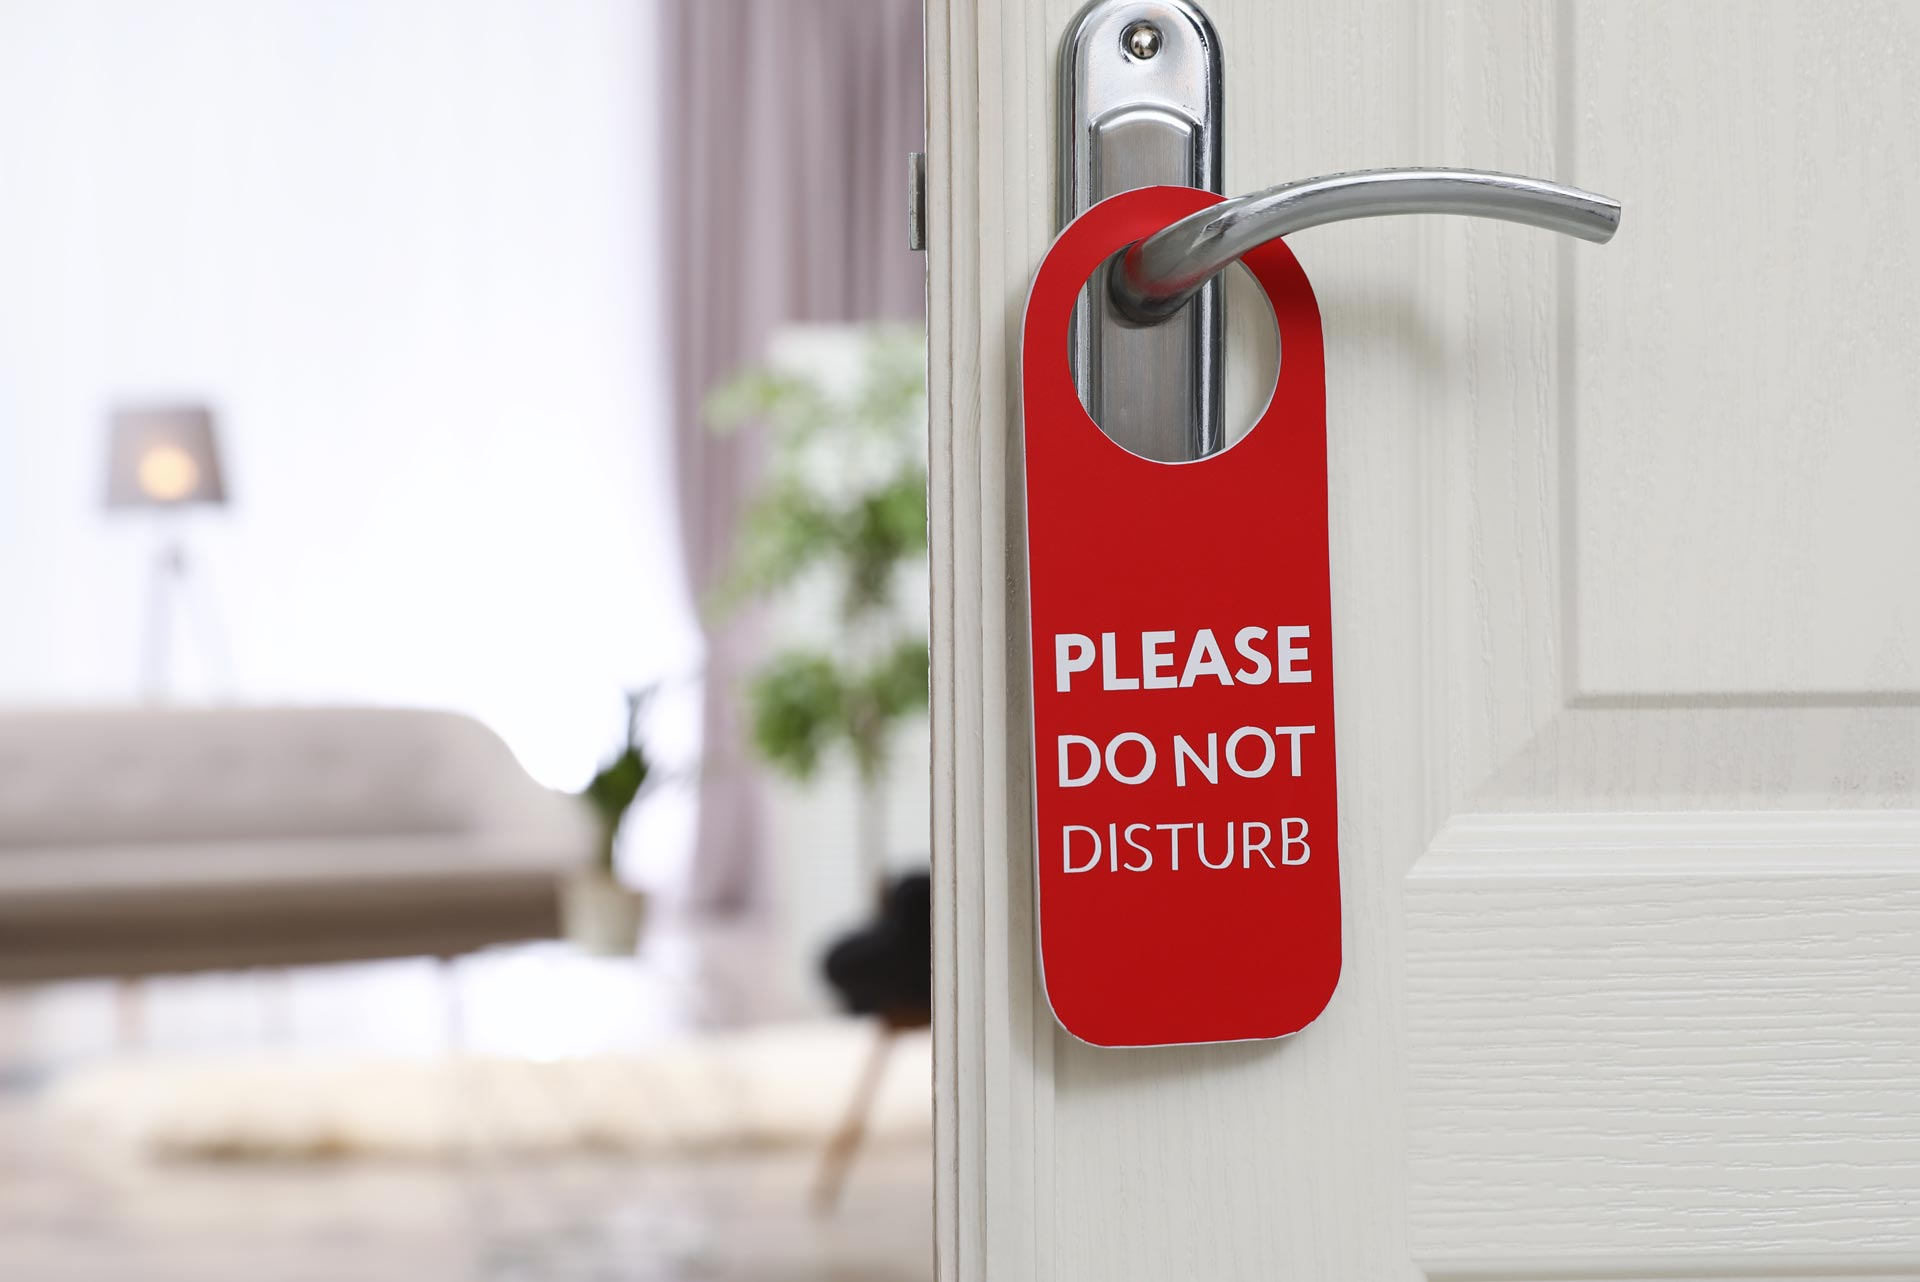 Hotel door with do not disurb